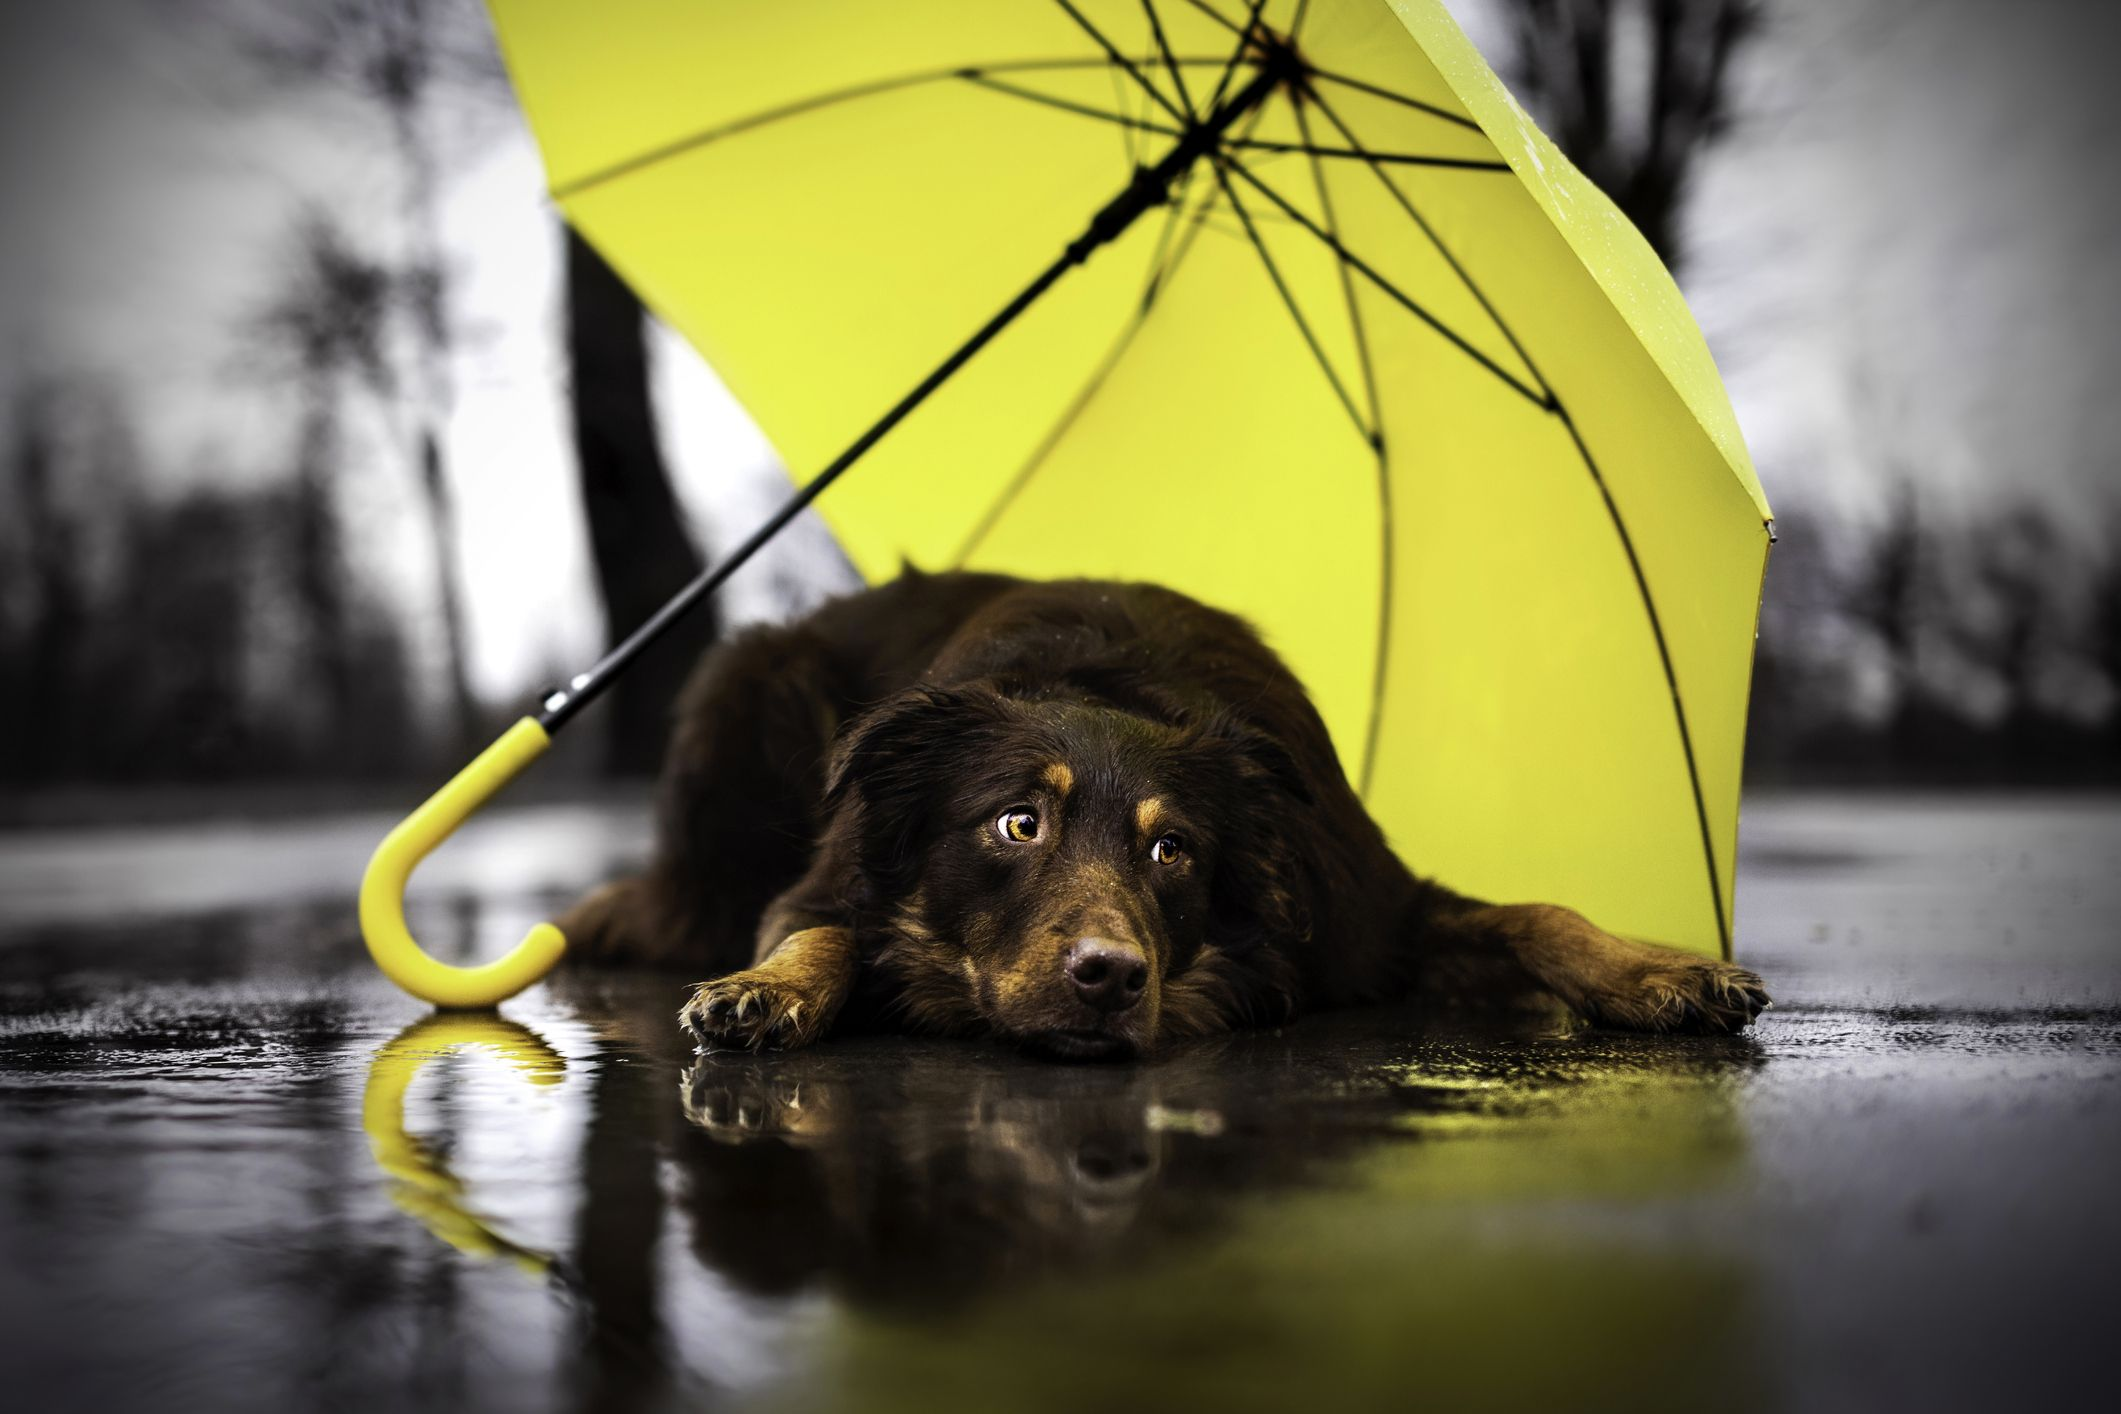 7 things to remember when walking your dog in rain and floods